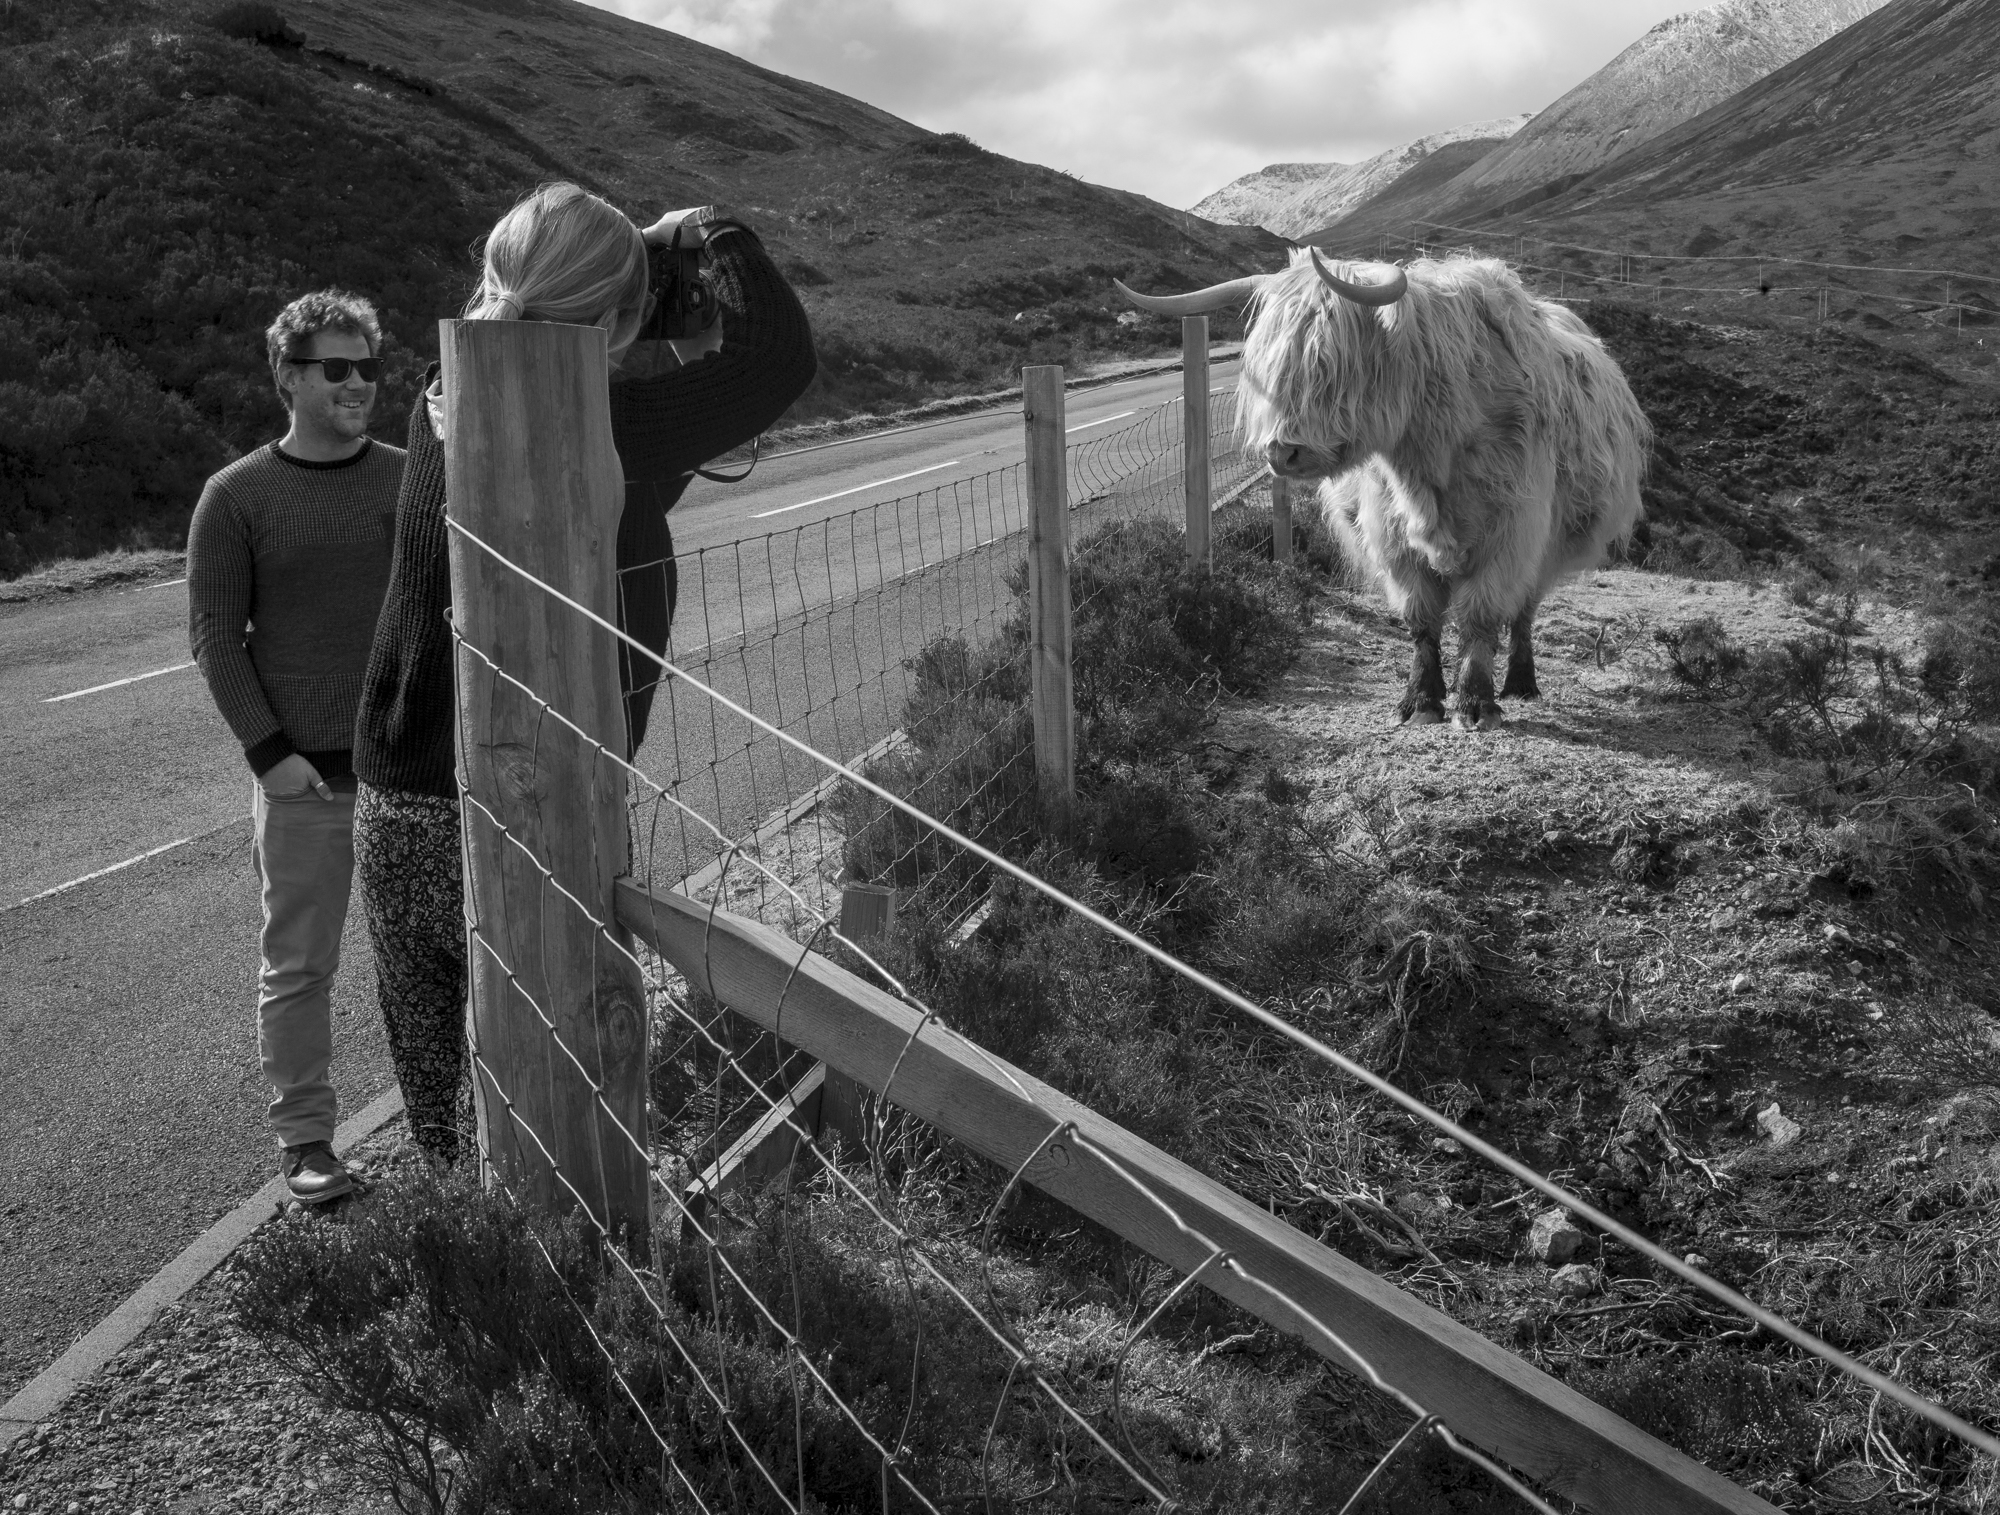 ©_Mark_Maio_HIghland_Cattle_Posing_Isle_of_Skye_2015.jpg